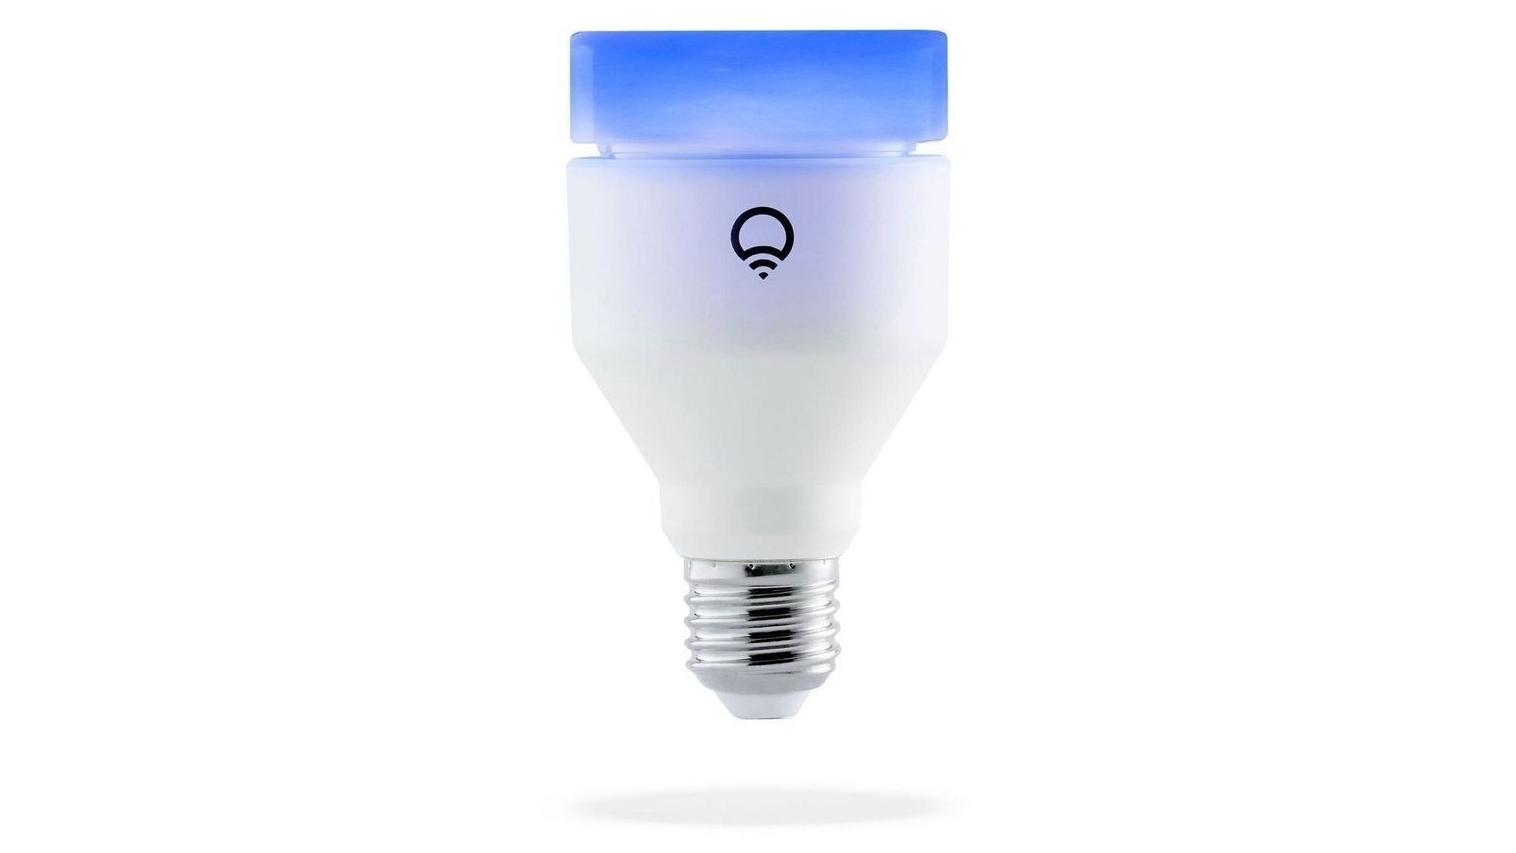 Smart Led Bulb Lifx A60 E27 Wifi Led Smart Light Bulb